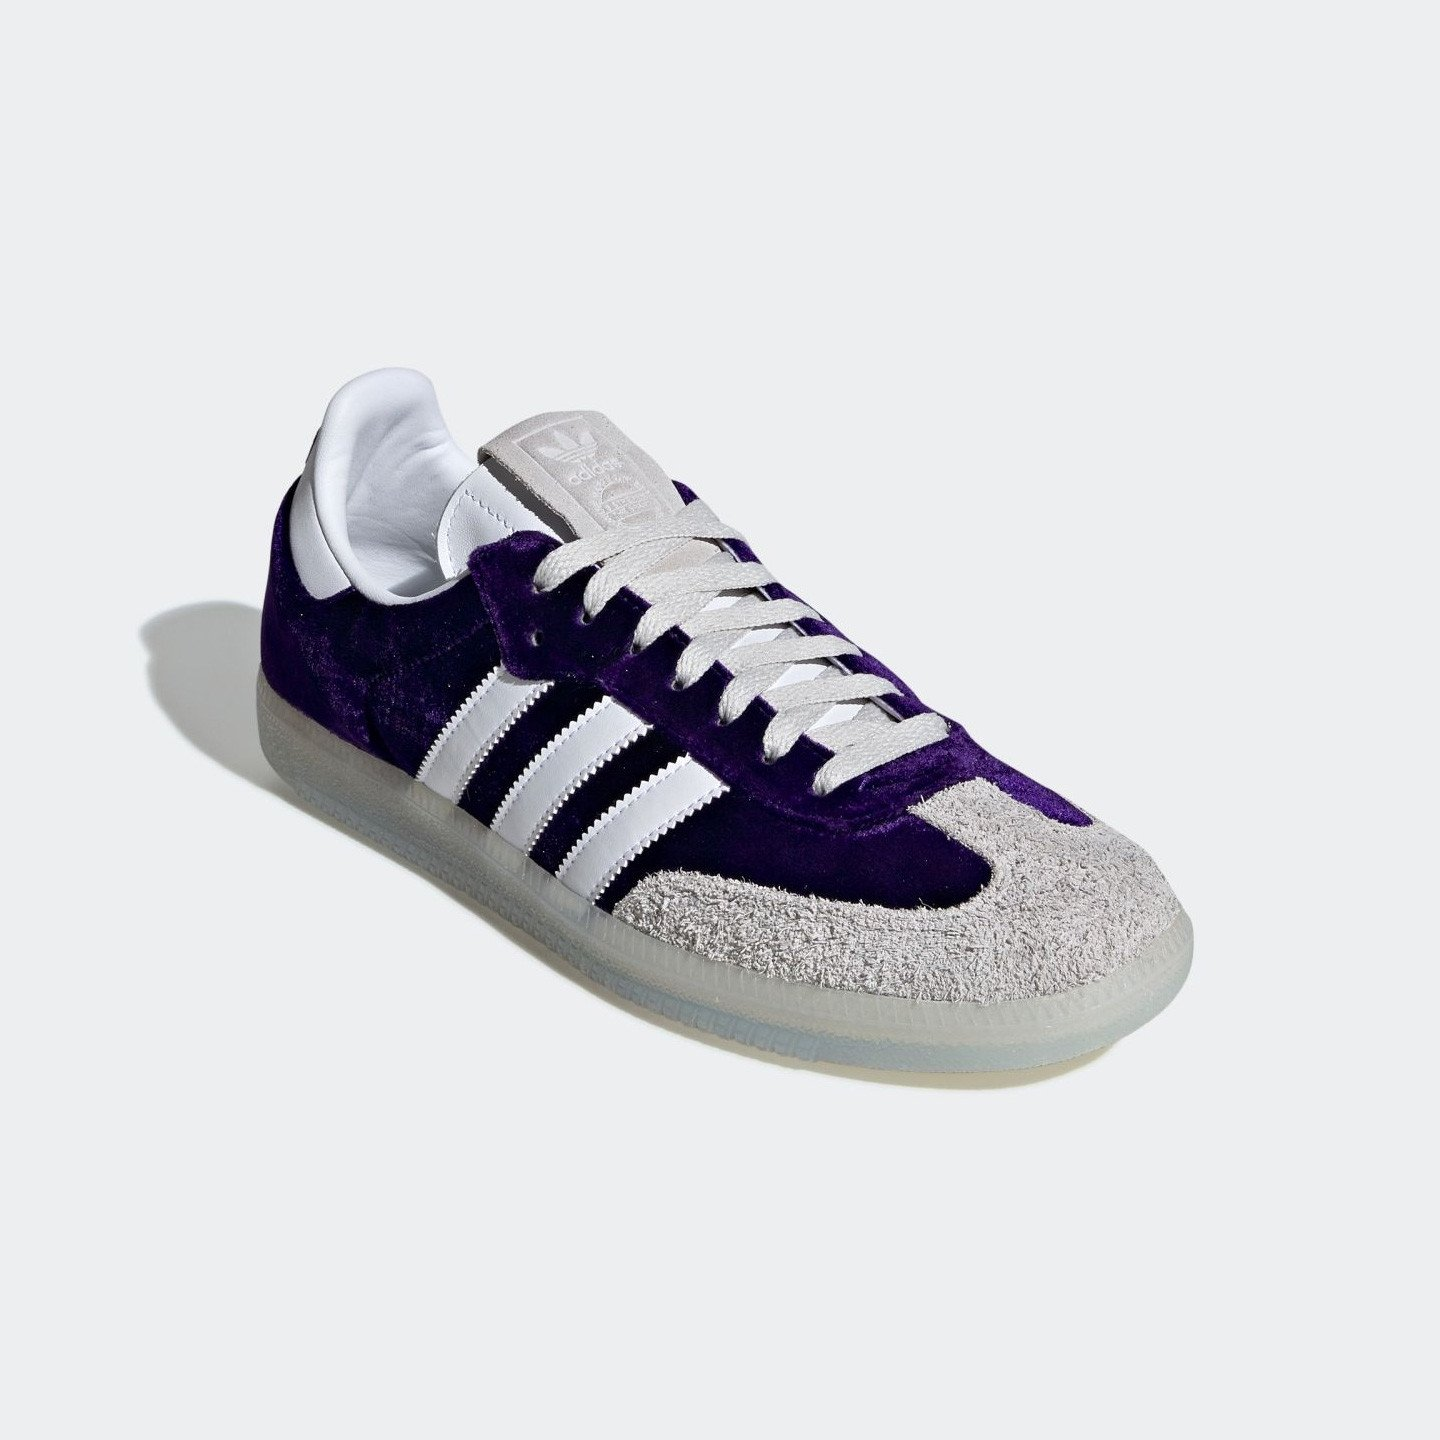 Adidas Samba OG 'Purple Haze' Purple / White DB3011